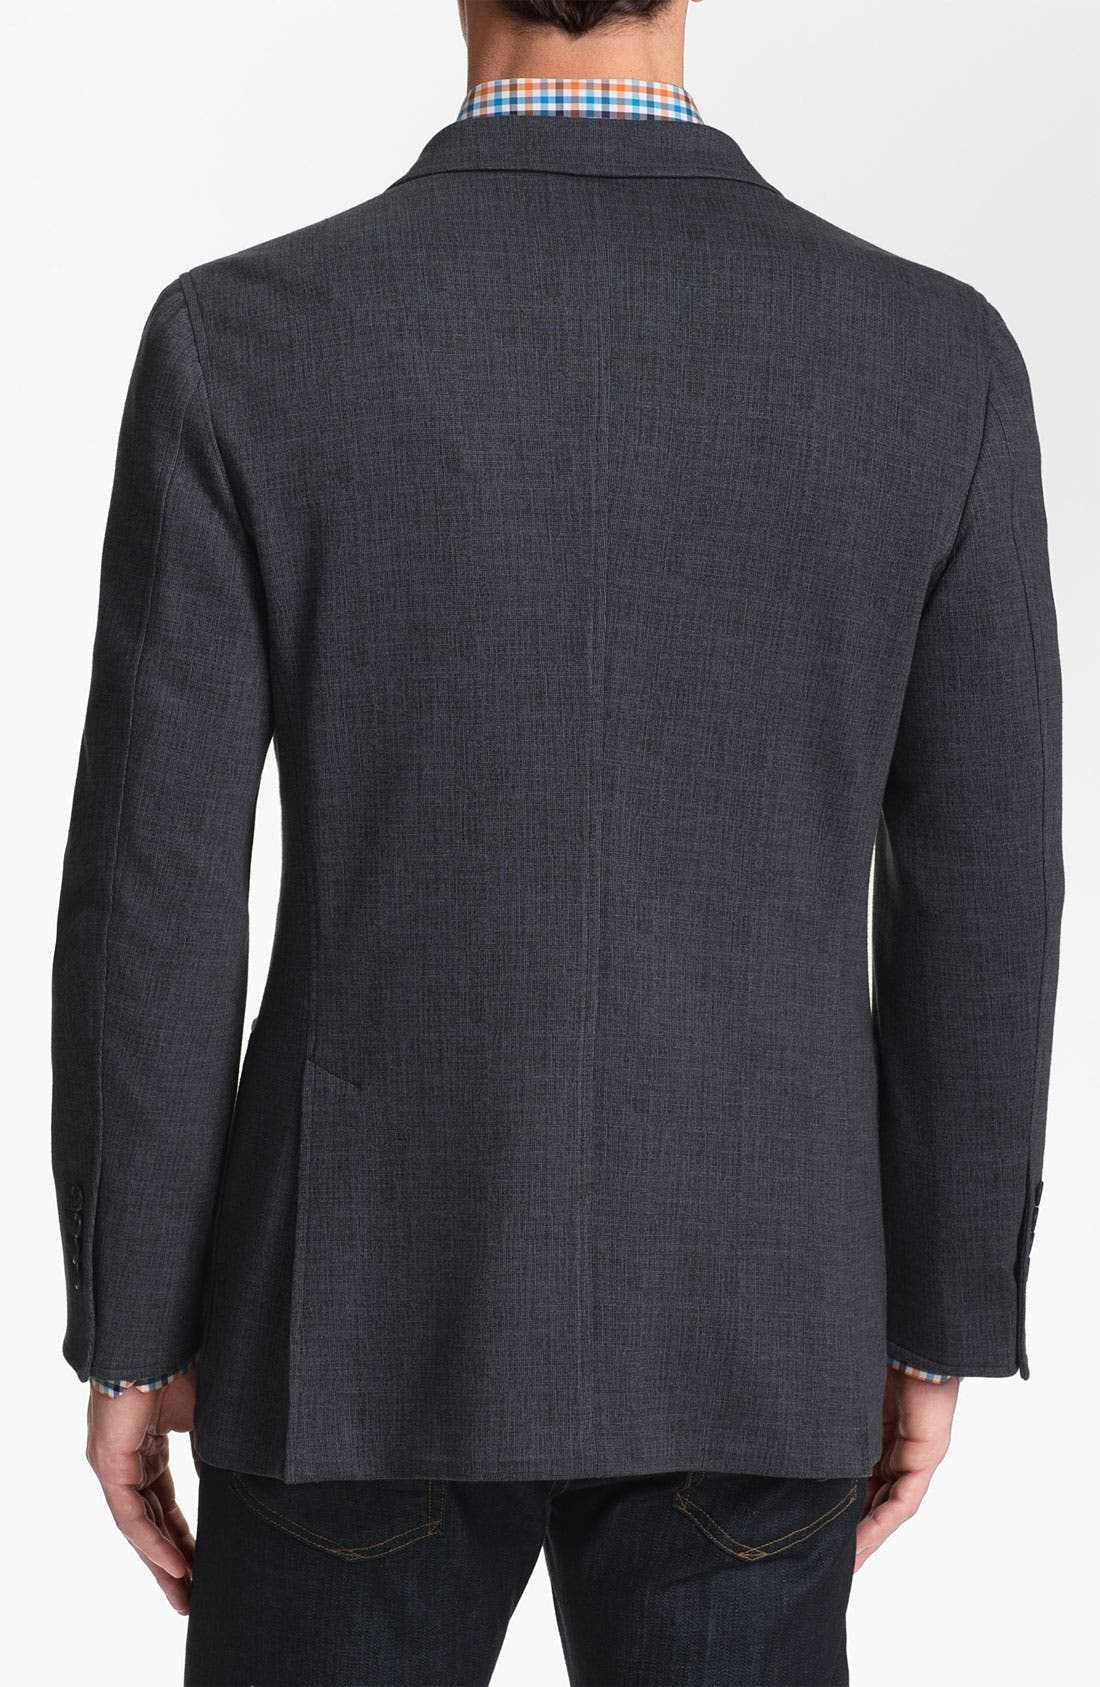 Alternate Image 2  - Joseph Abboud Cotton Blend Blazer